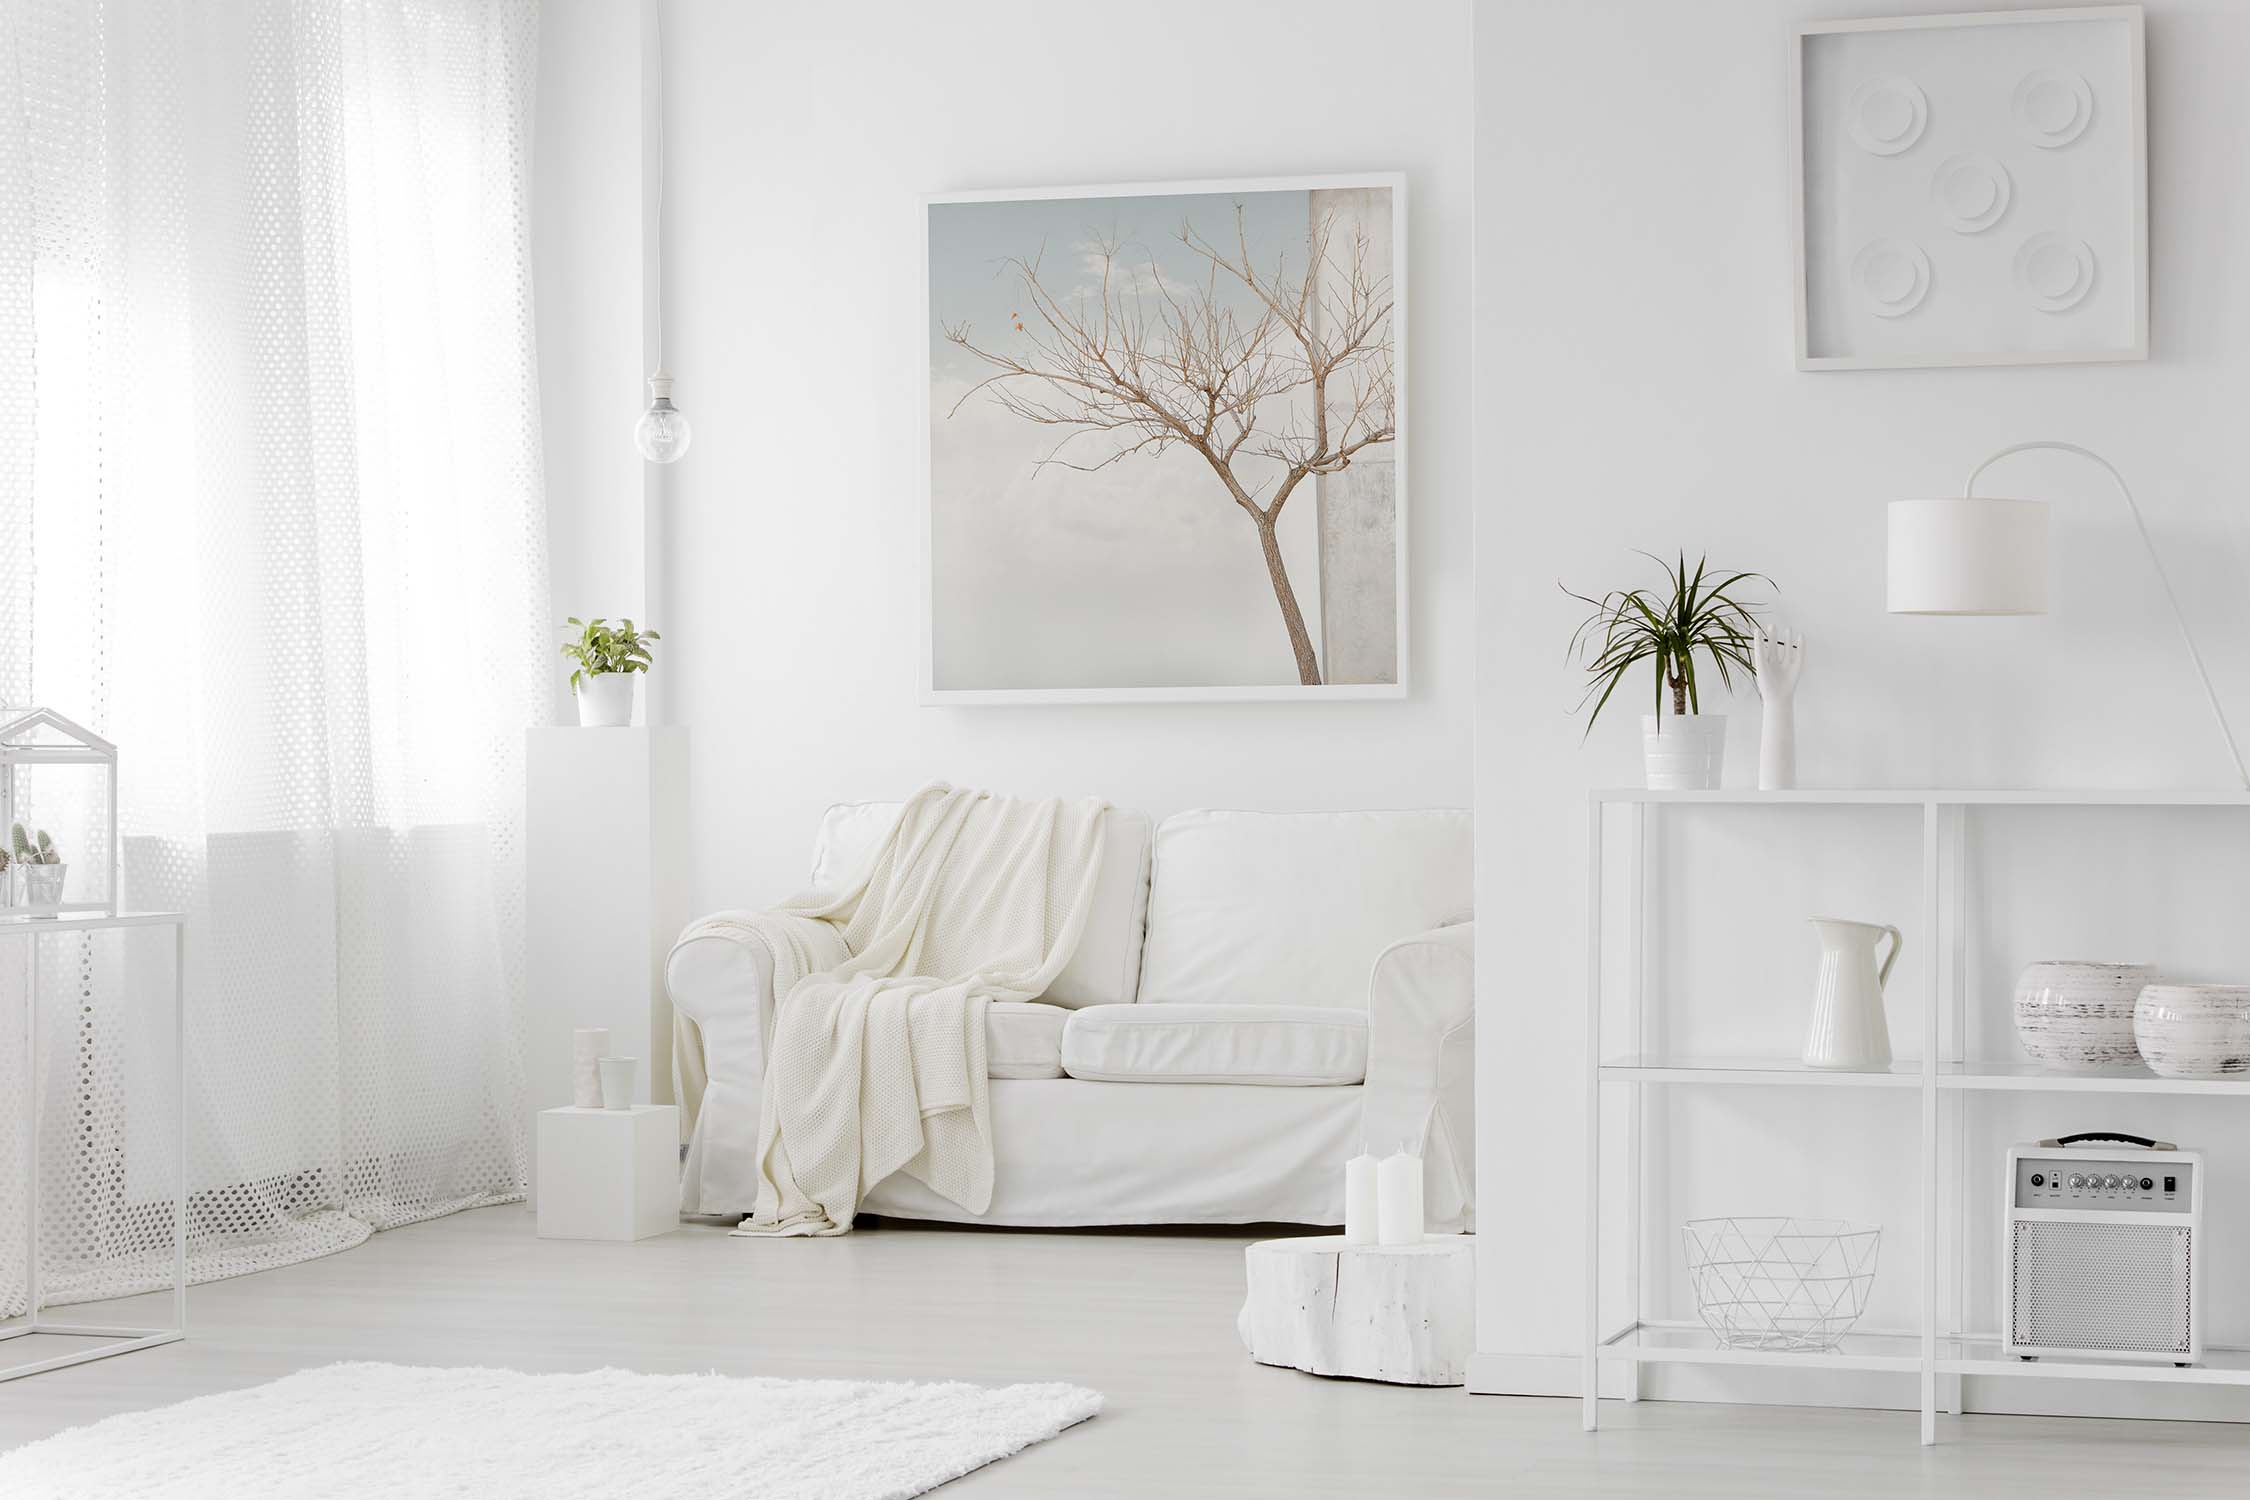 Simple white living room interior with fine art photography